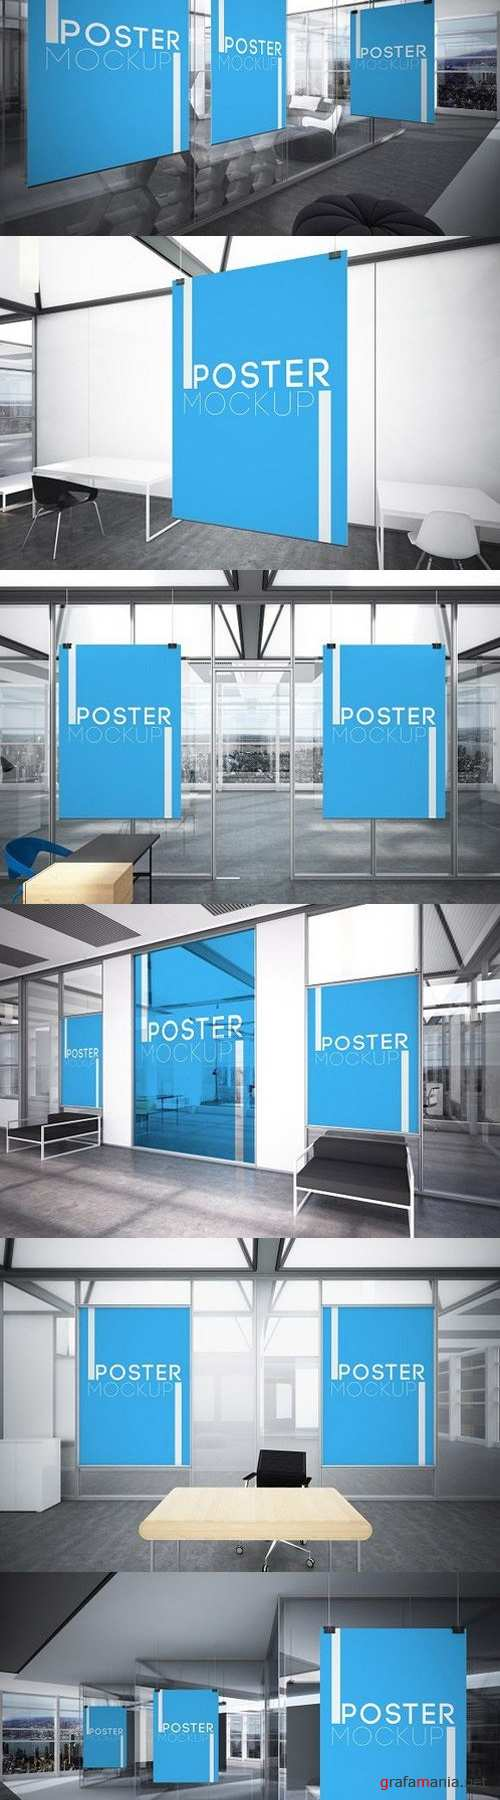 Office Posters Mockups 1437518